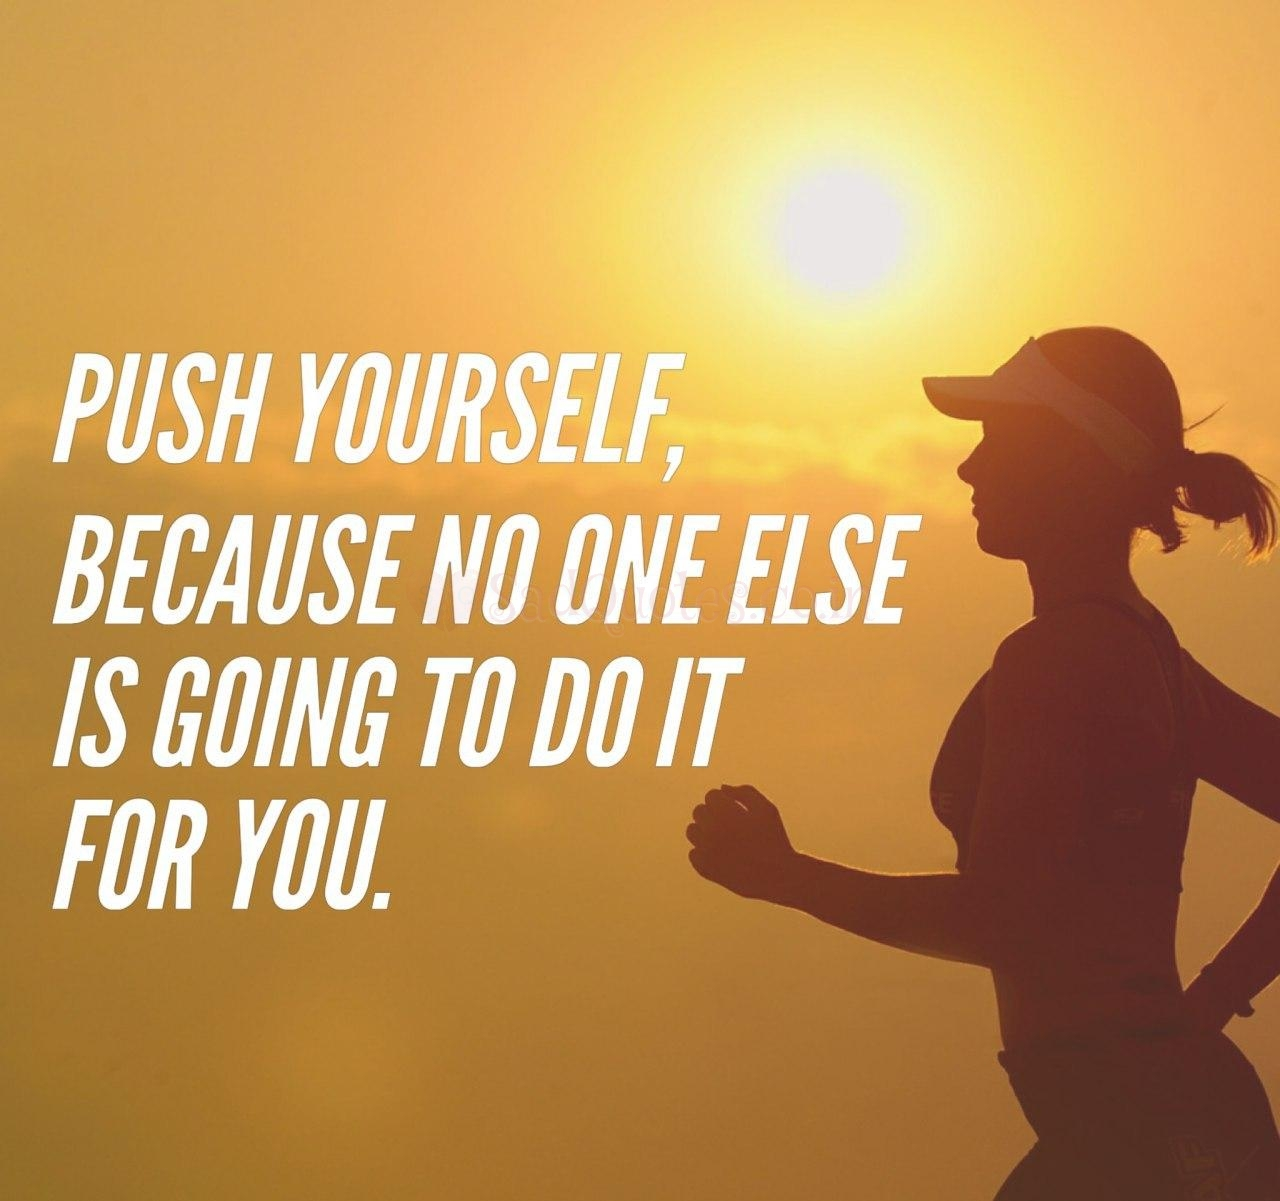 Push yourself because - Motivational Quotes